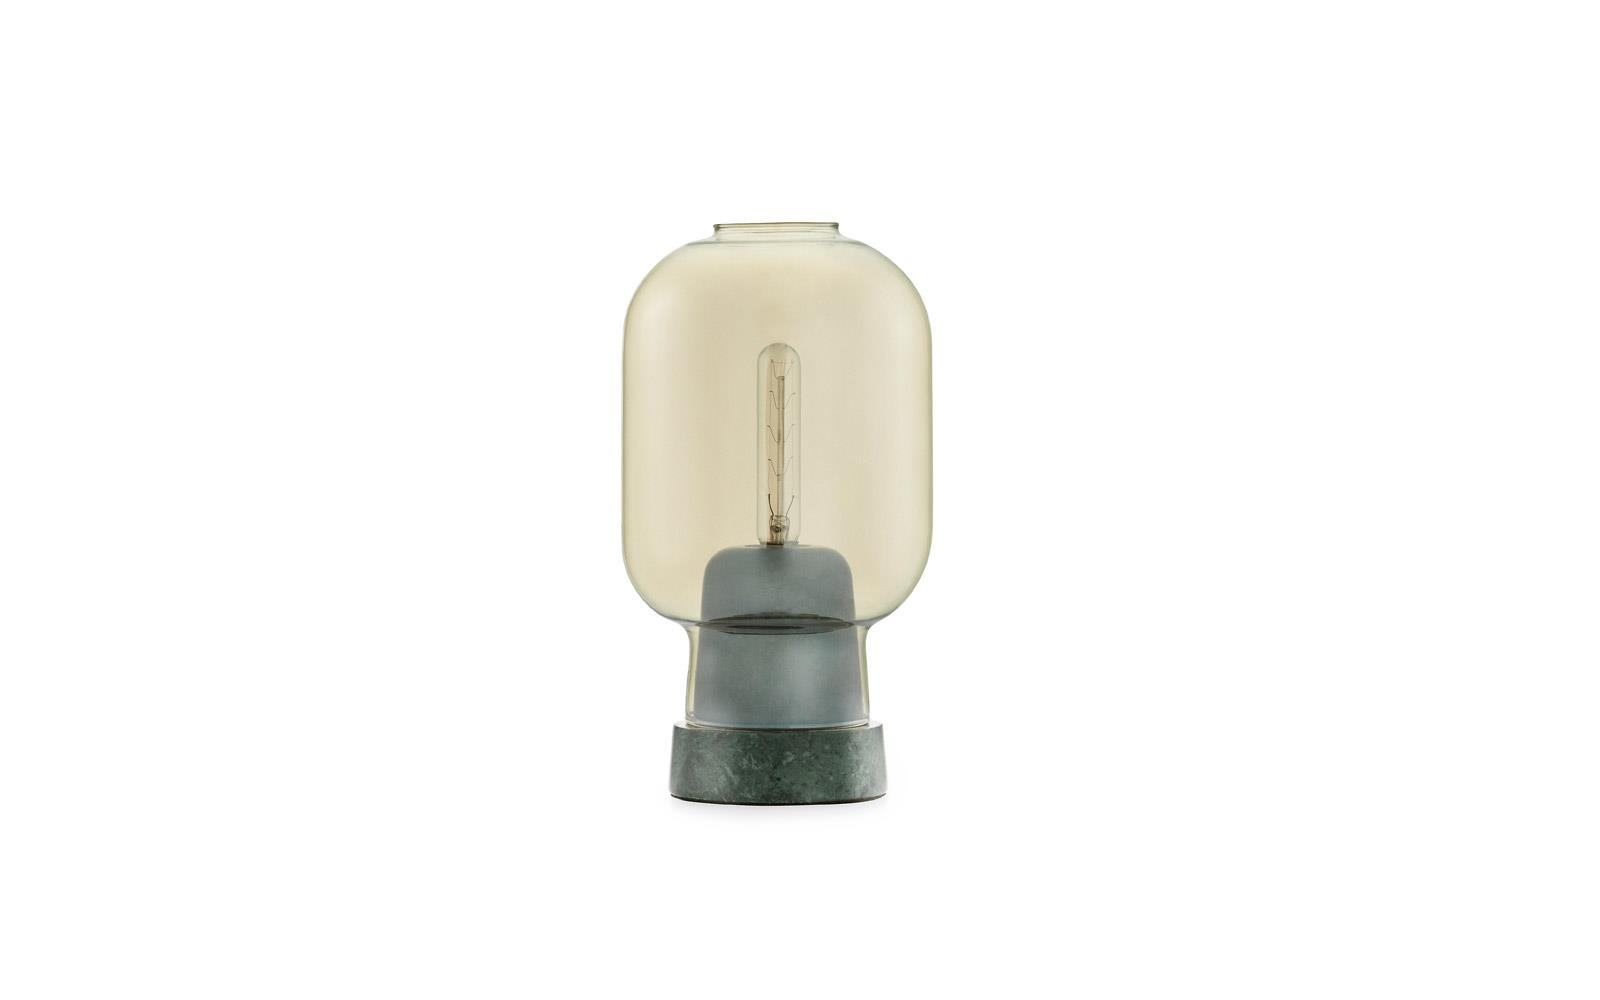 Amp table lamp gold/green